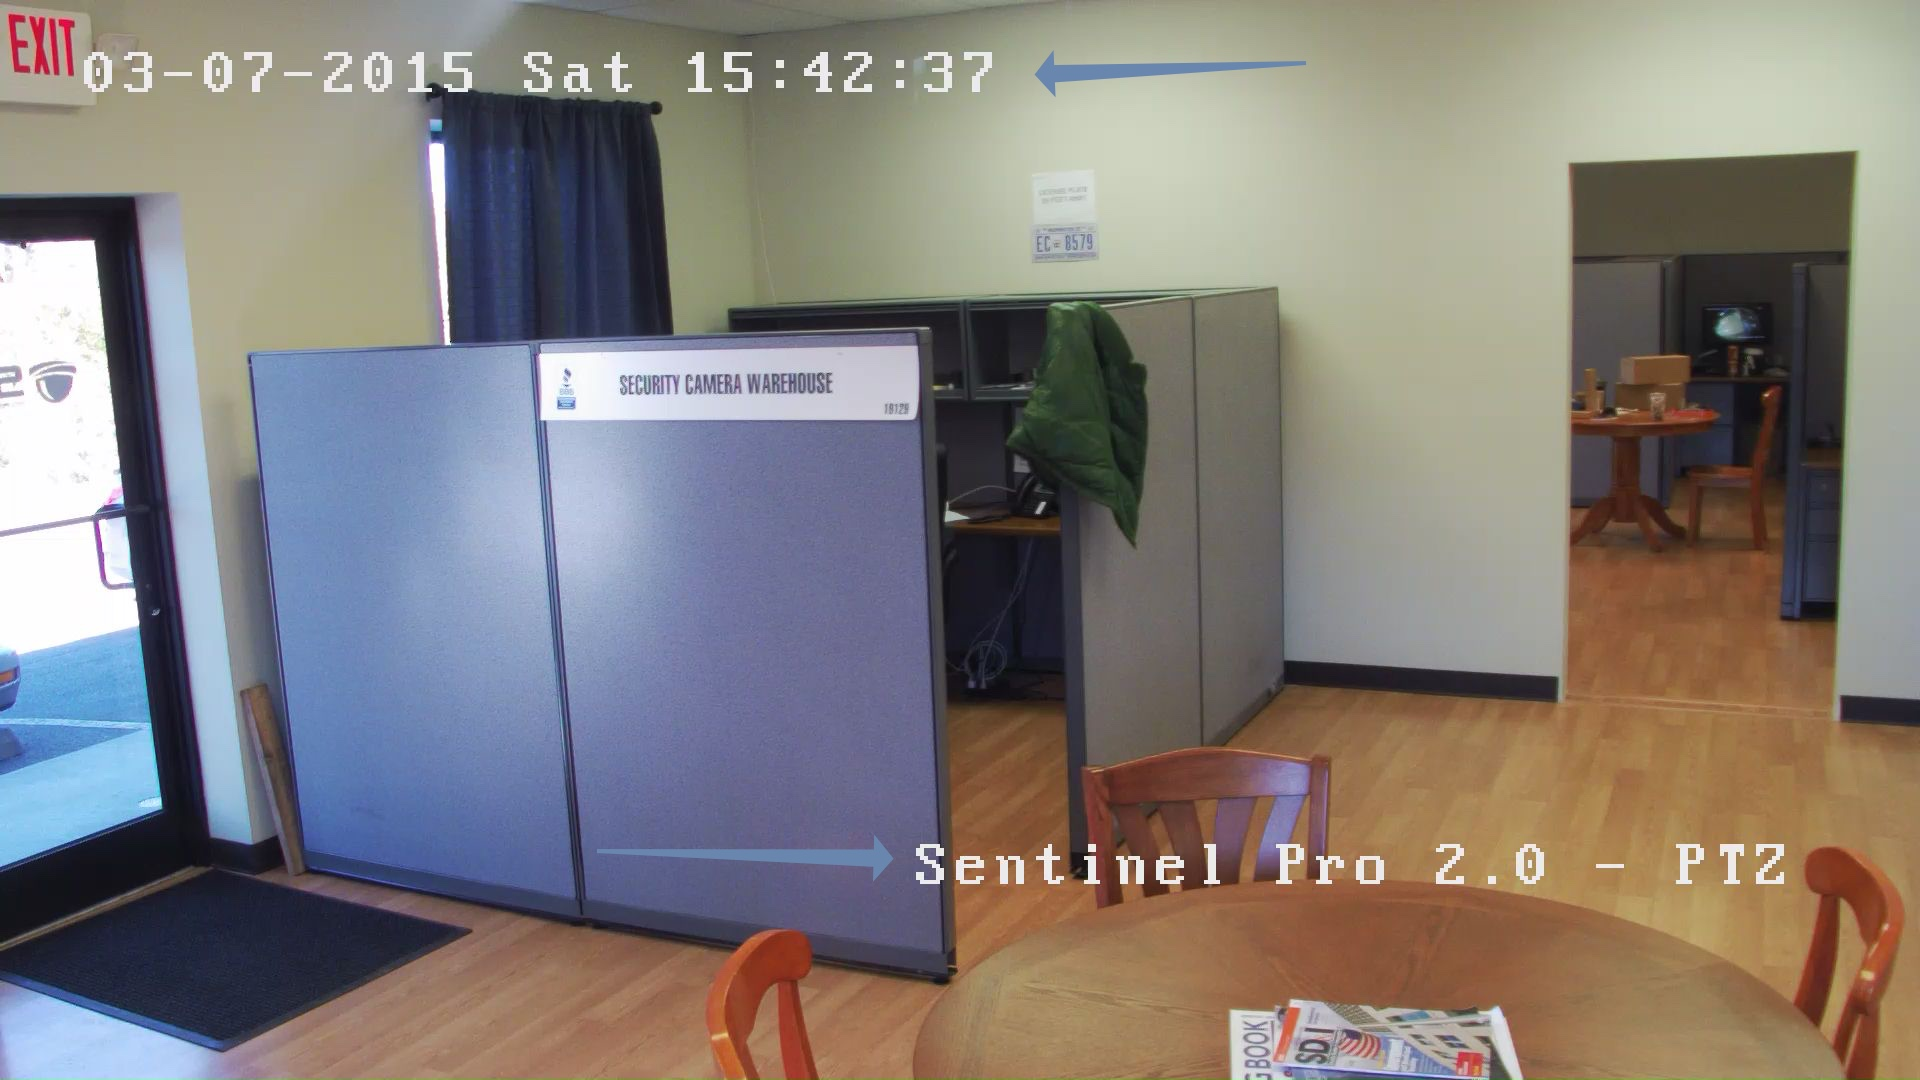 real security camera footage has text overlays